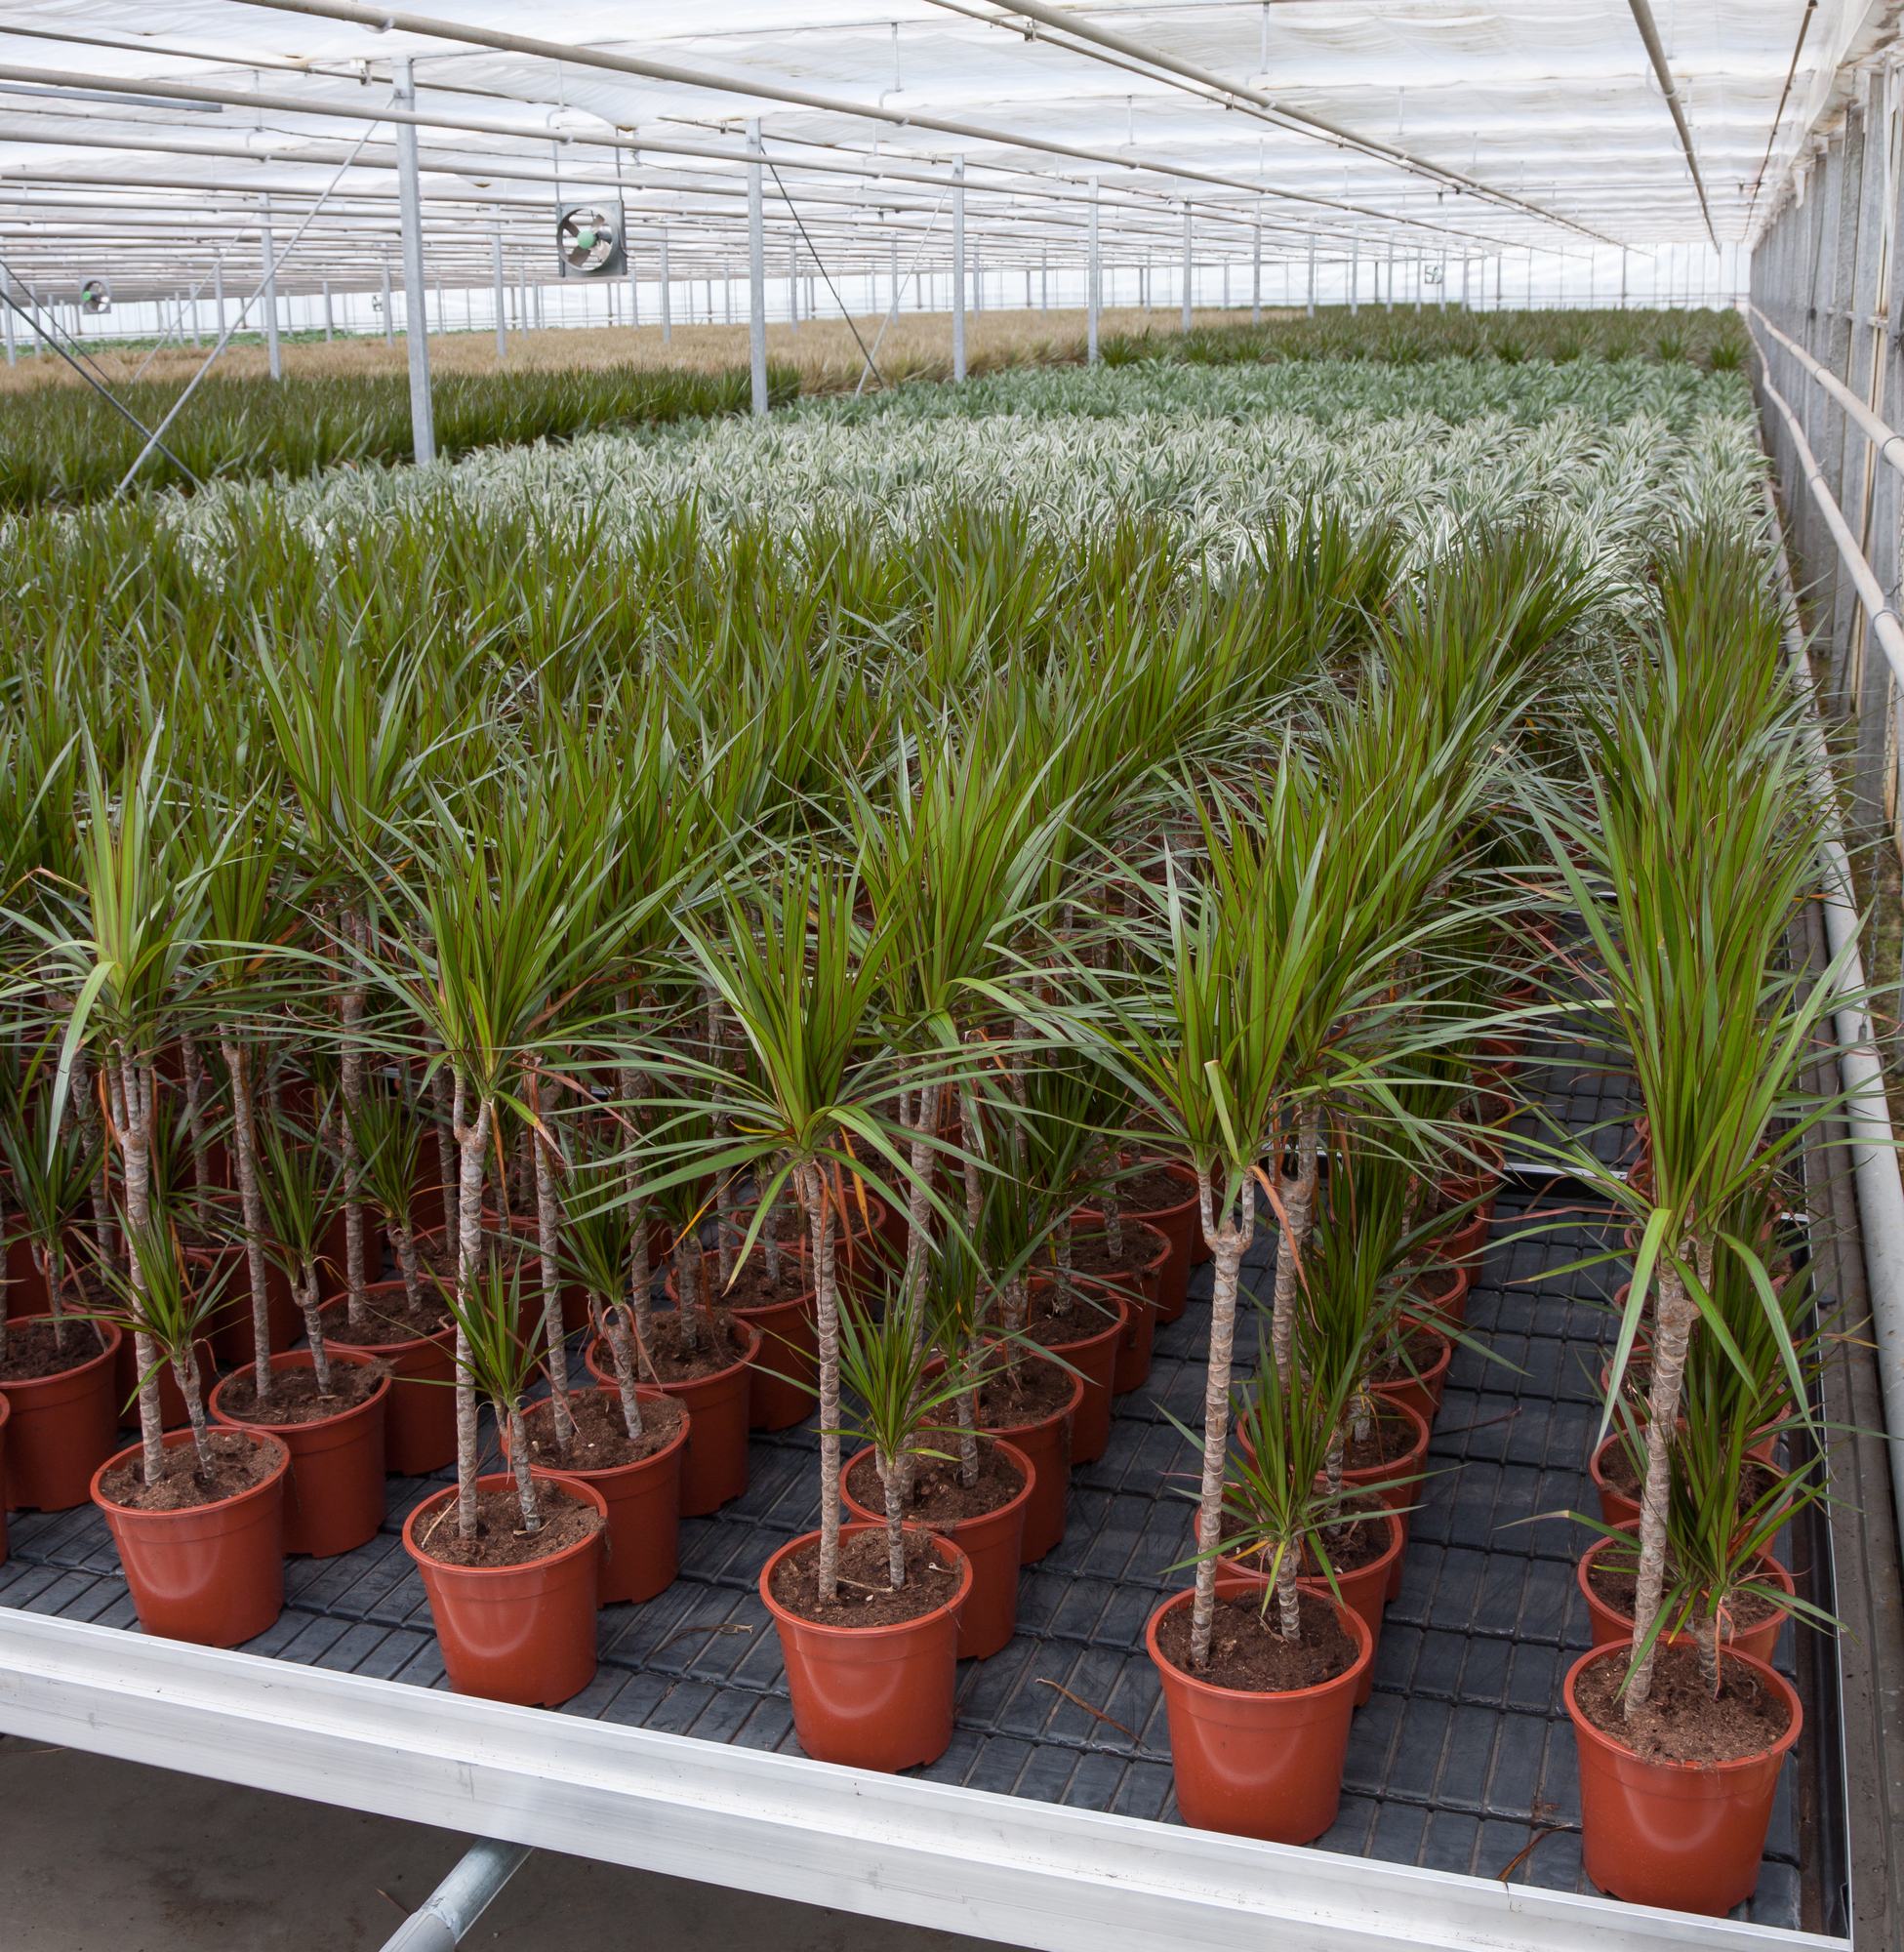 Dracaena in a greenhouse (the Netherlands)